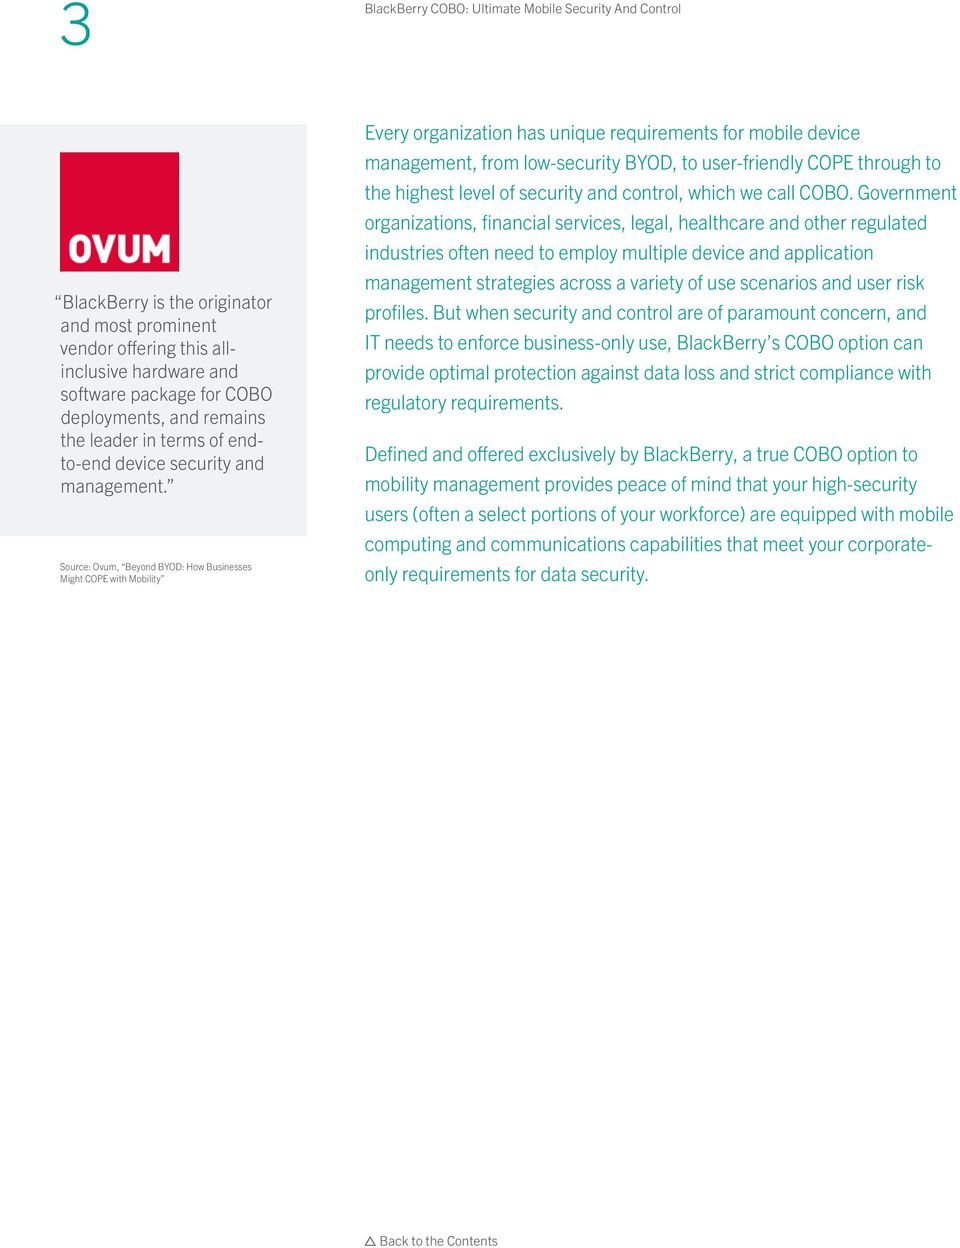 Source: Ovum, Beyond BYOD: How Businesses Might COPE with Mobility Every organization has unique requirements for mobile device management, from low-security BYOD, to user-friendly COPE through to